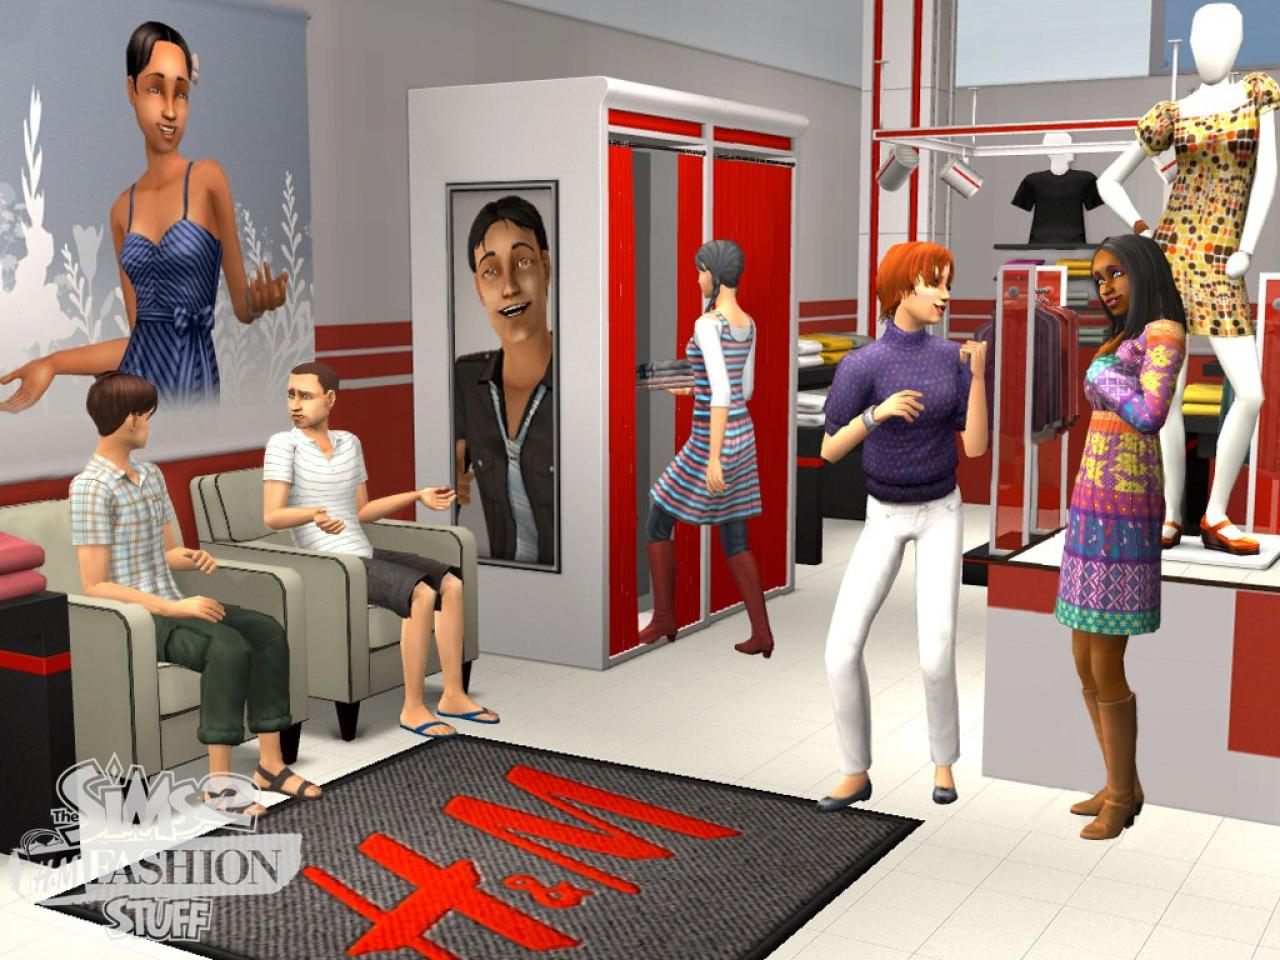 Fashion icon game for pc 30